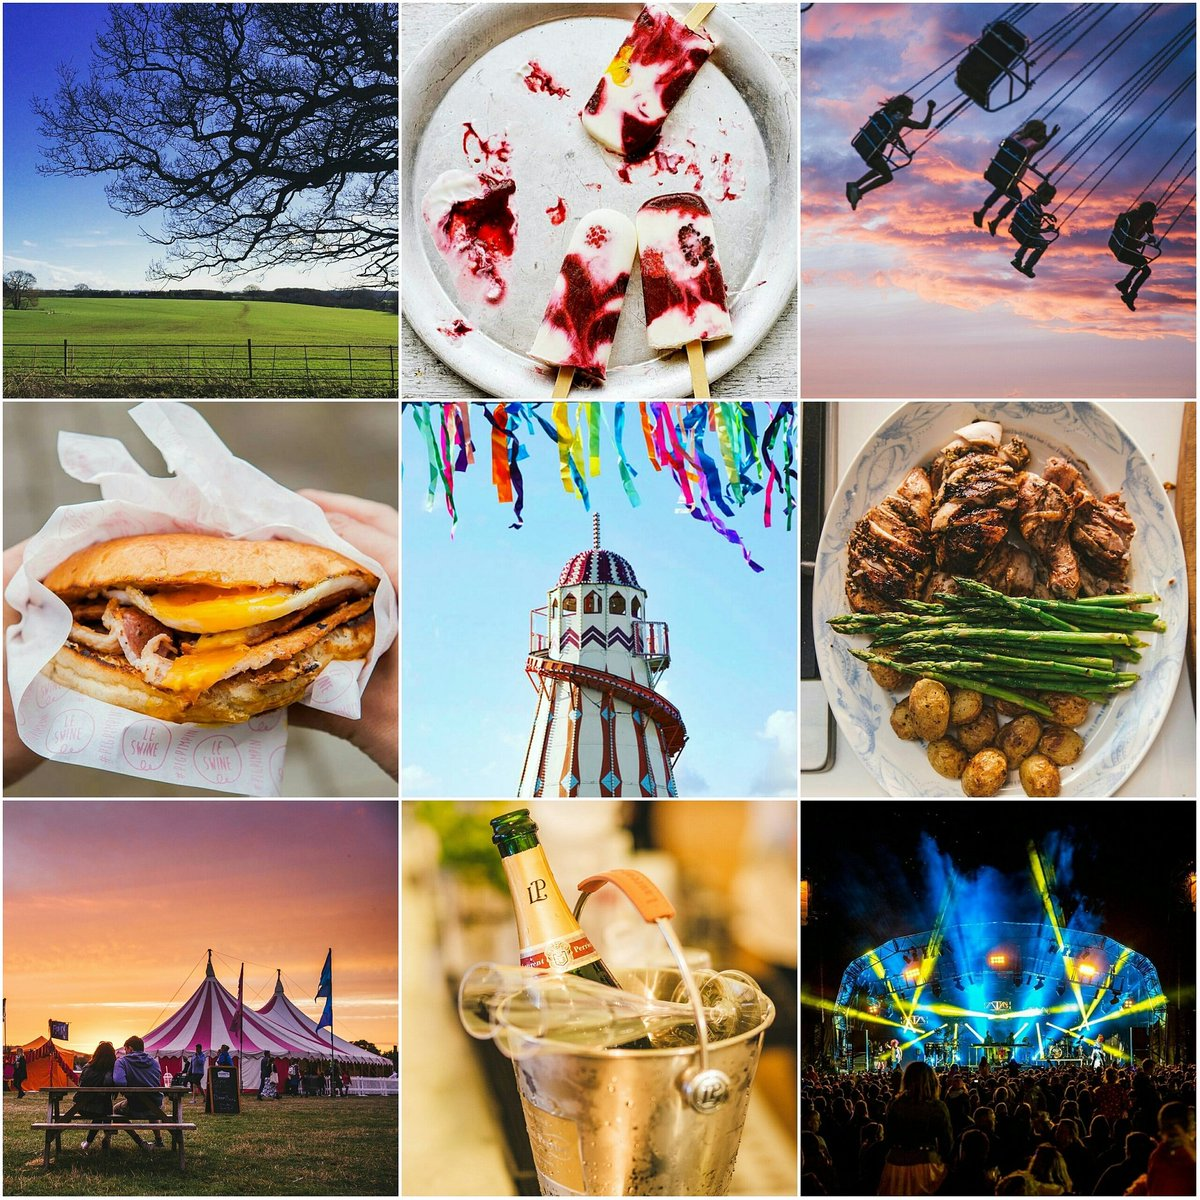 RT @Clerkenwell_Boy: #WIN a VIP FRIDAY foodie experience @TheBigFeastival this Summer! More details in the link ???? https://t.co/nhXegqChDv h…